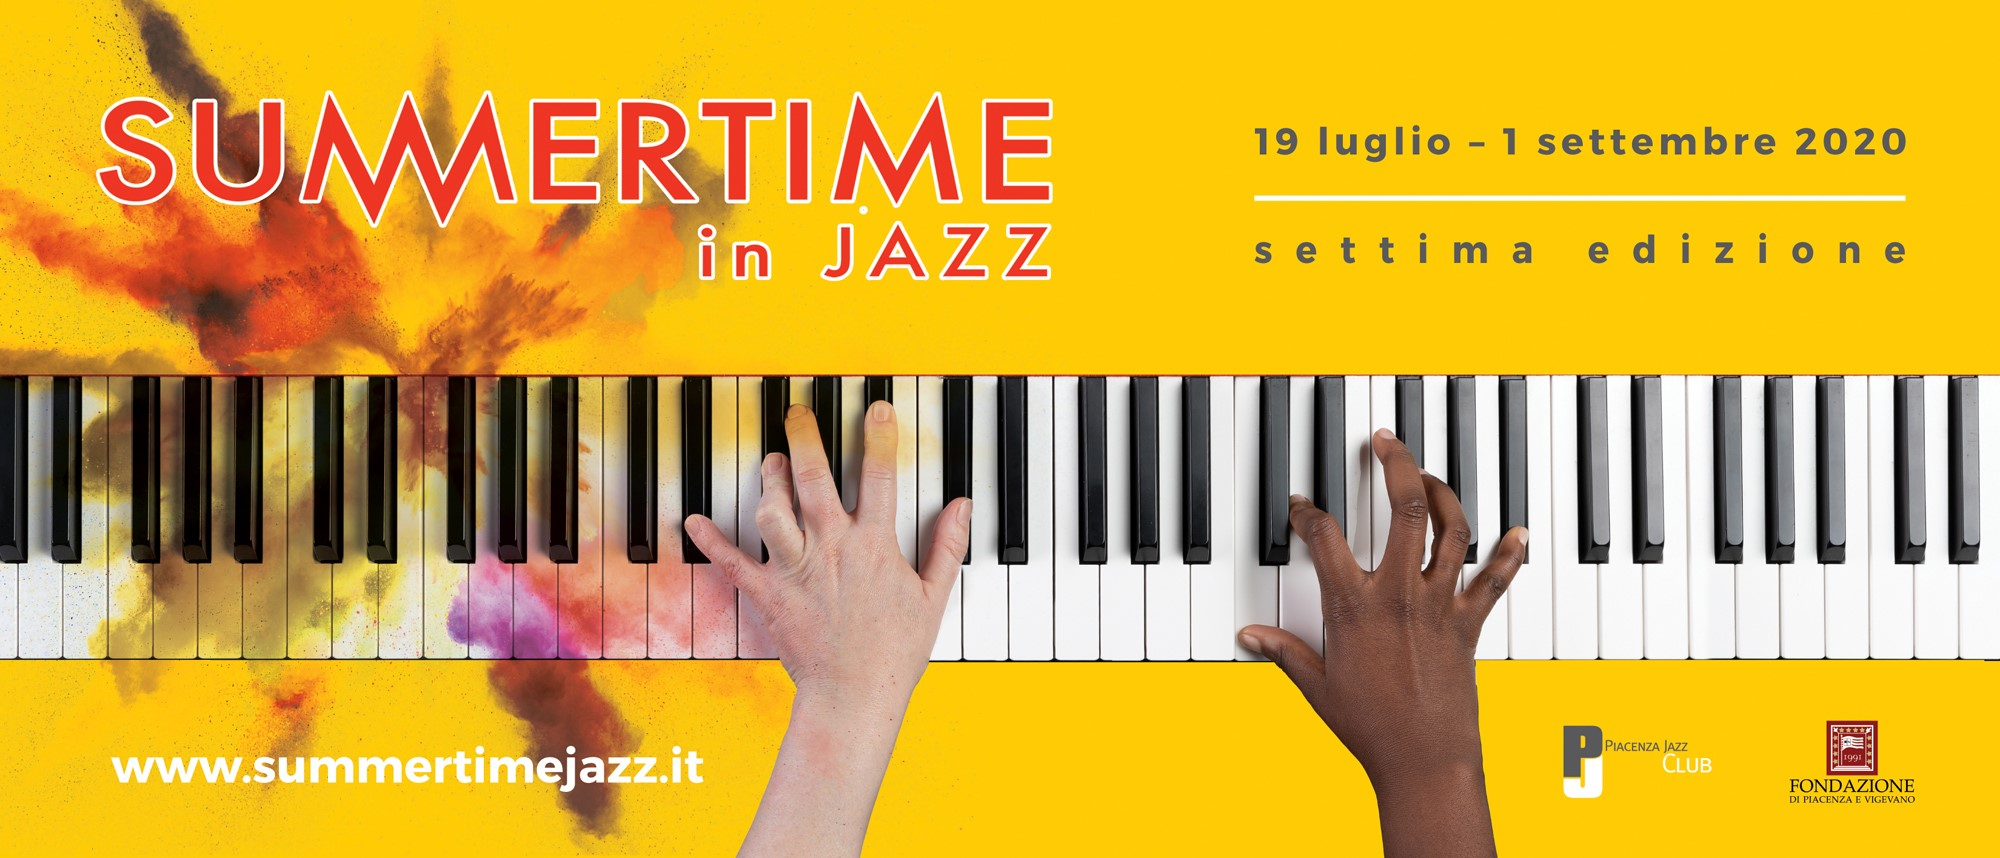 L'Estate del jazz ai tempi del Coronavirus – Summertime in Jazz